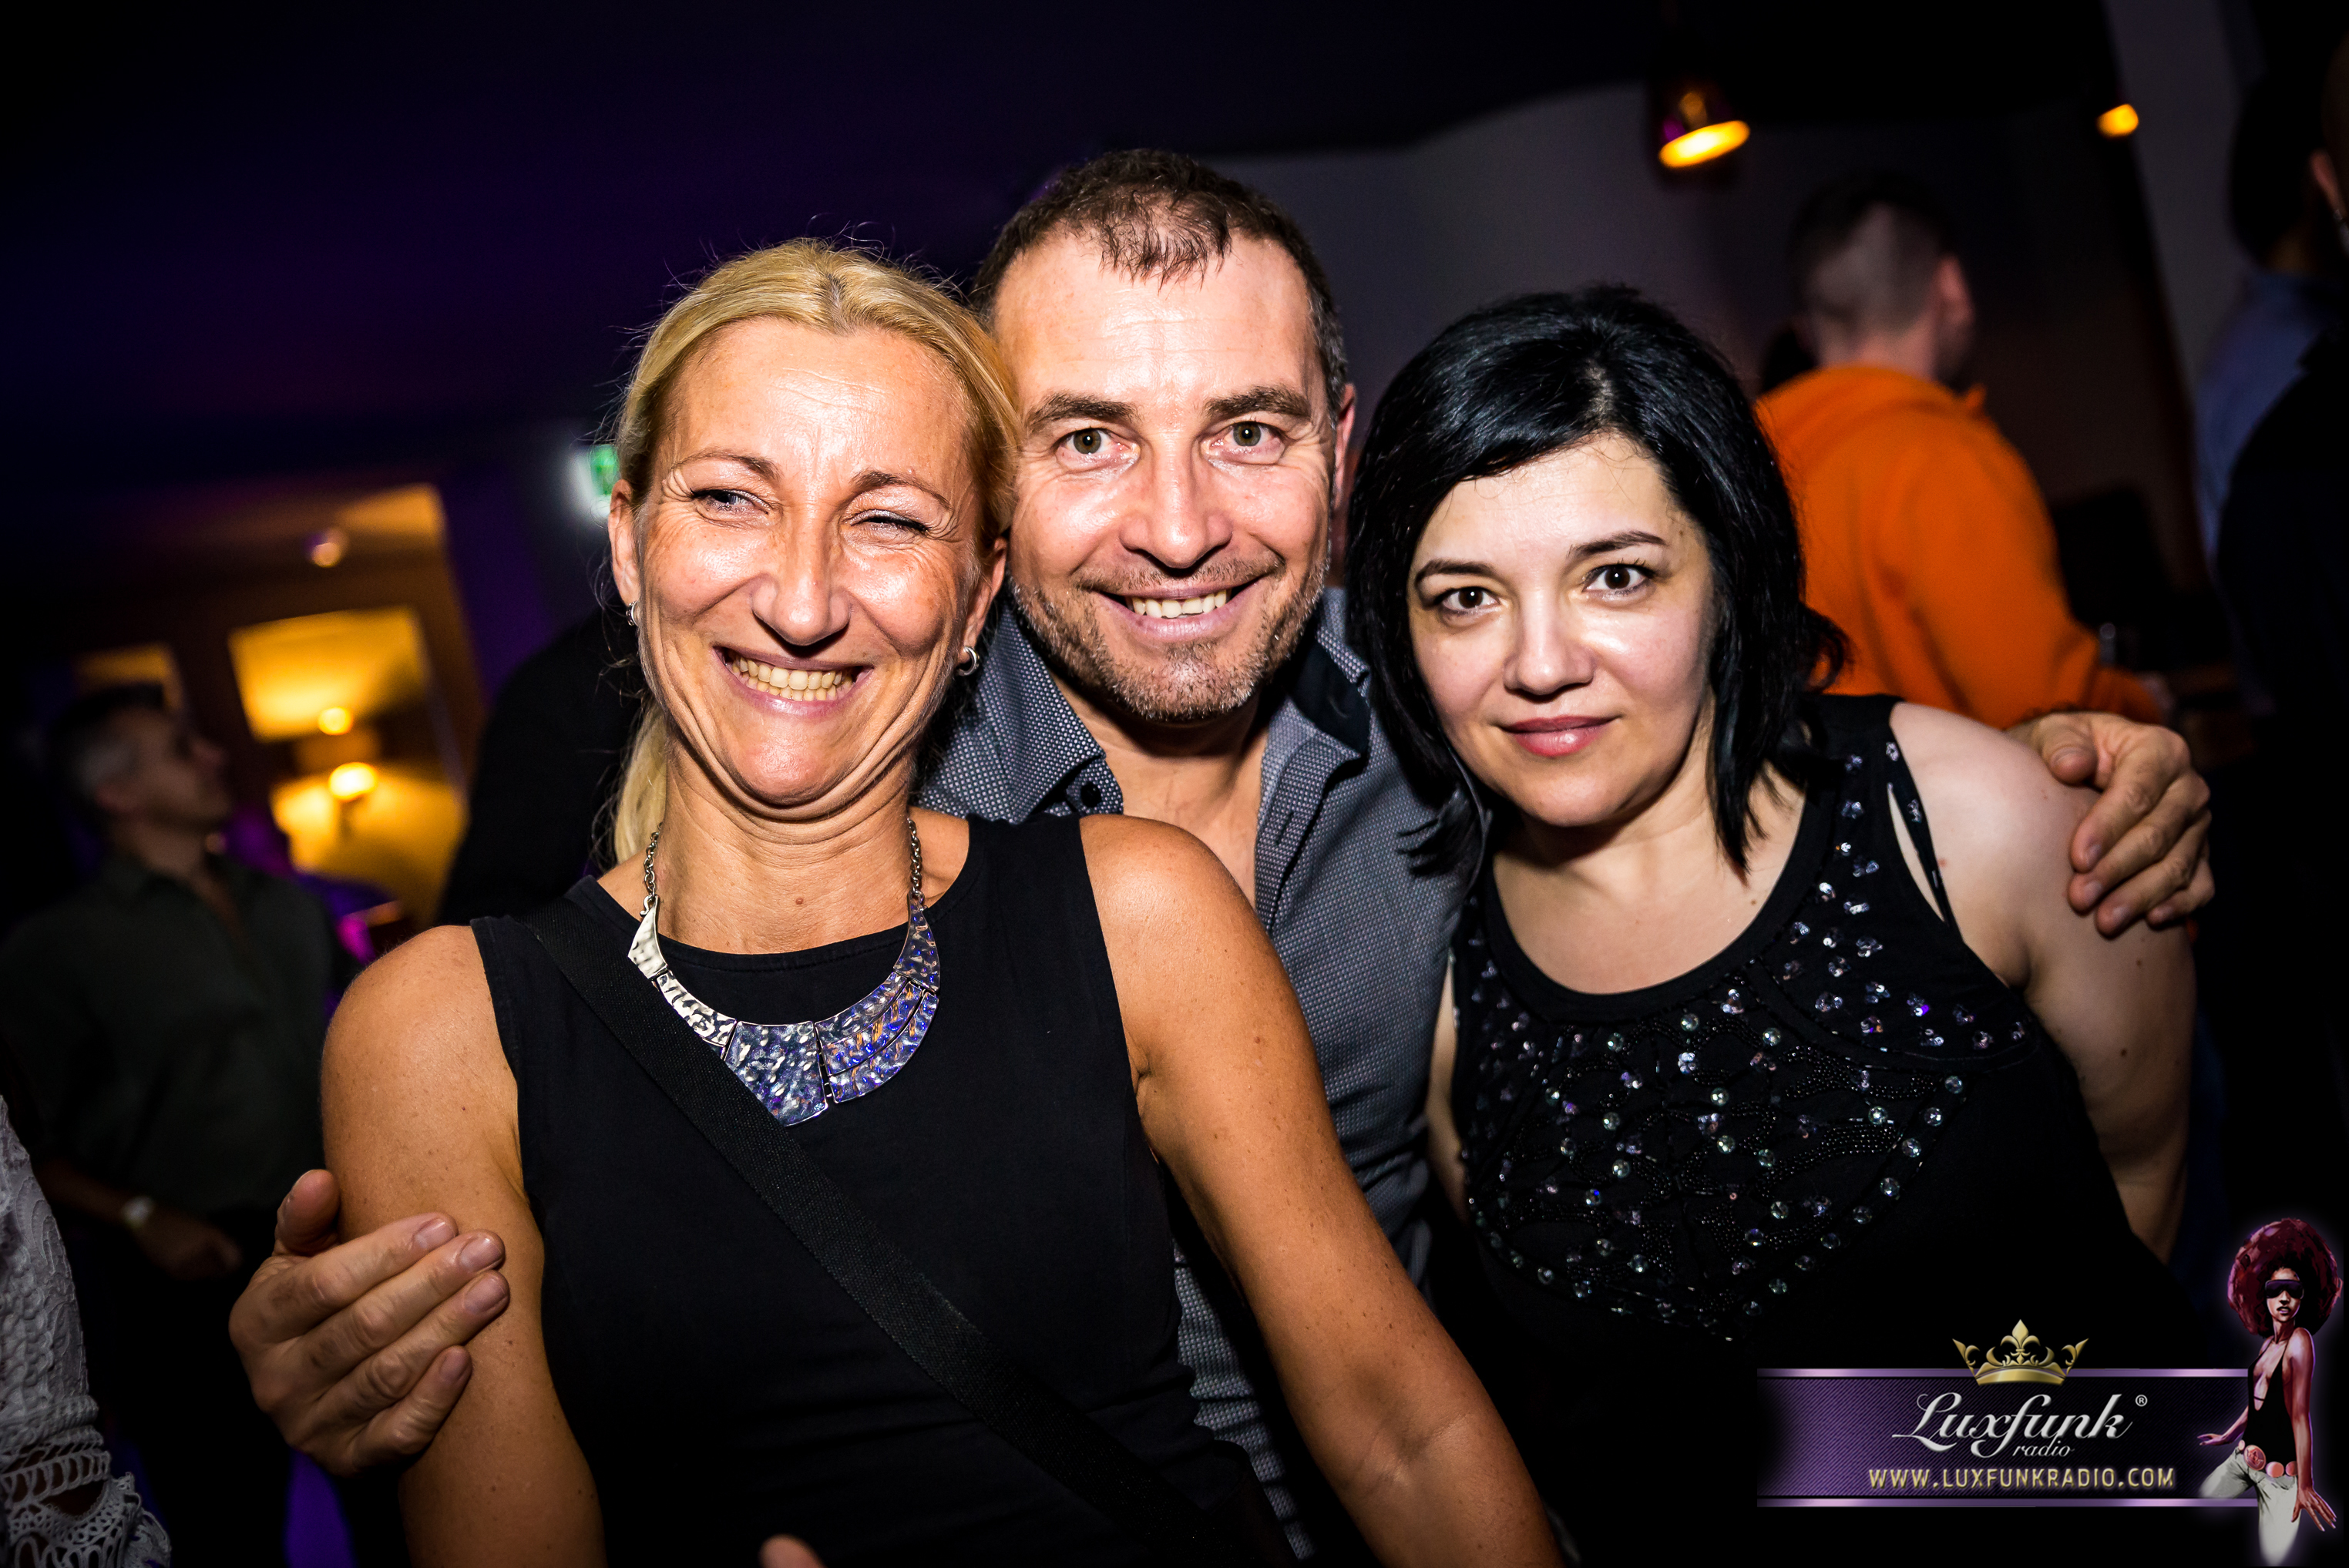 luxfunk-radio-funky-party-20191108-lock-budapest-1330